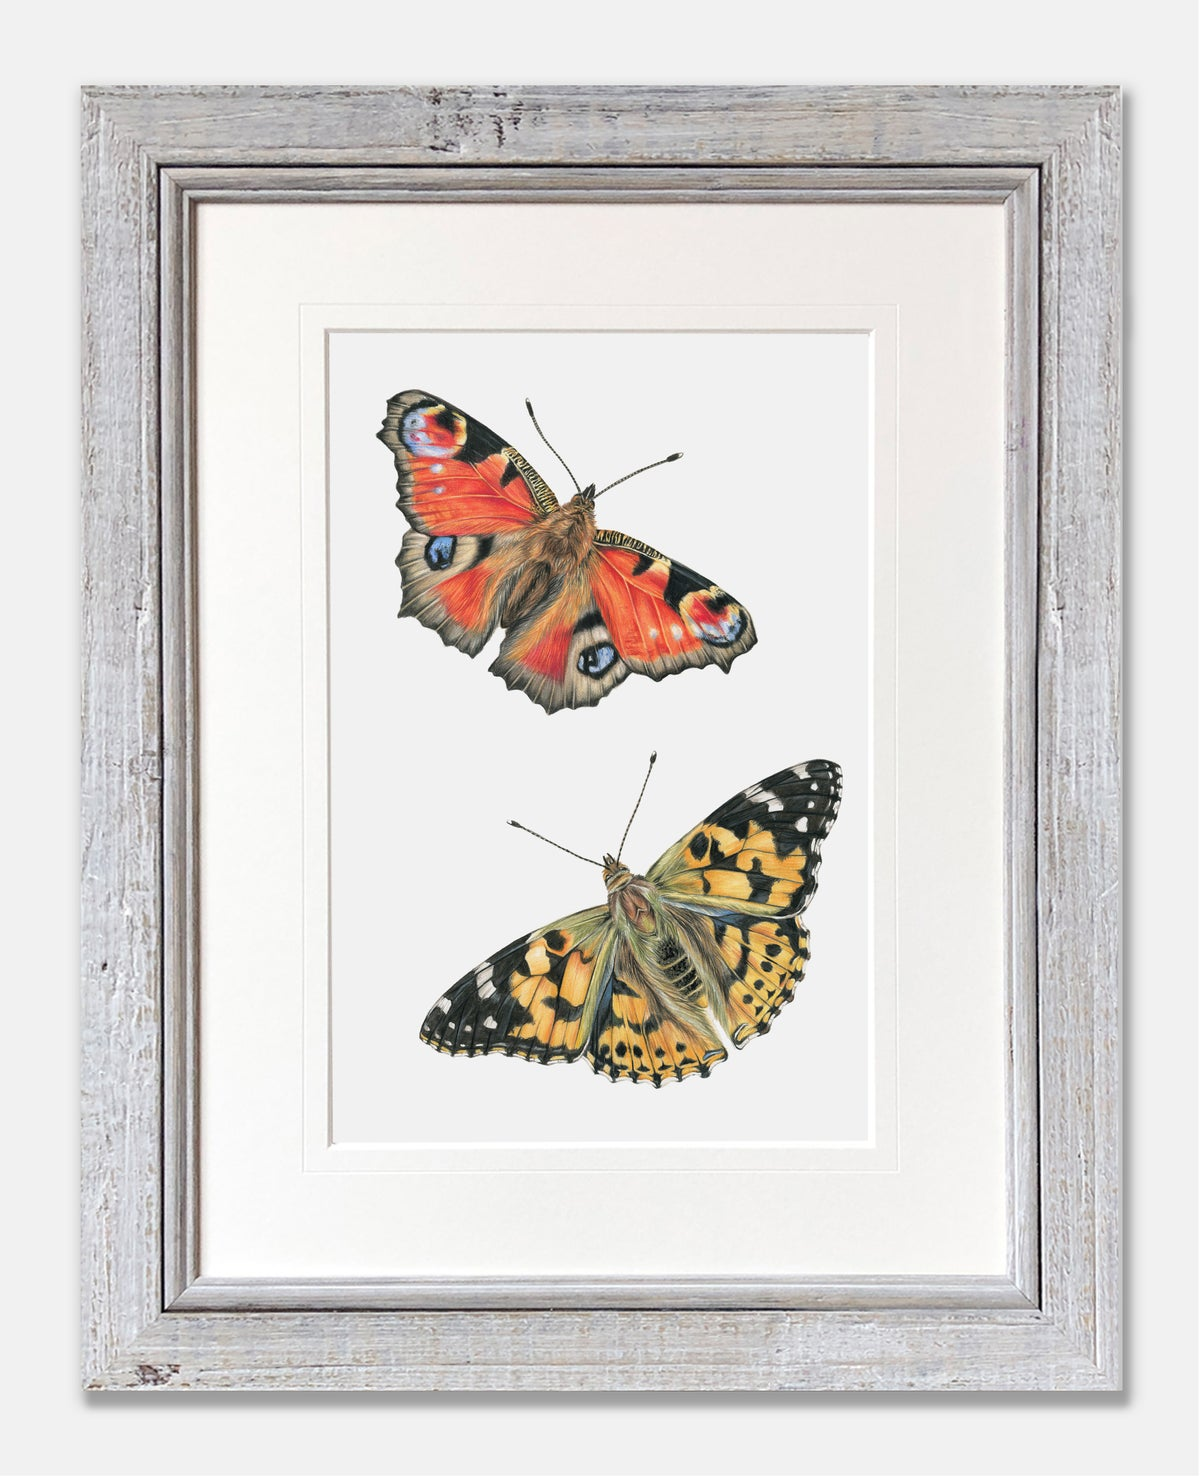 Image of Peacock & Painted Lady Butterflies - Limited Edition Print